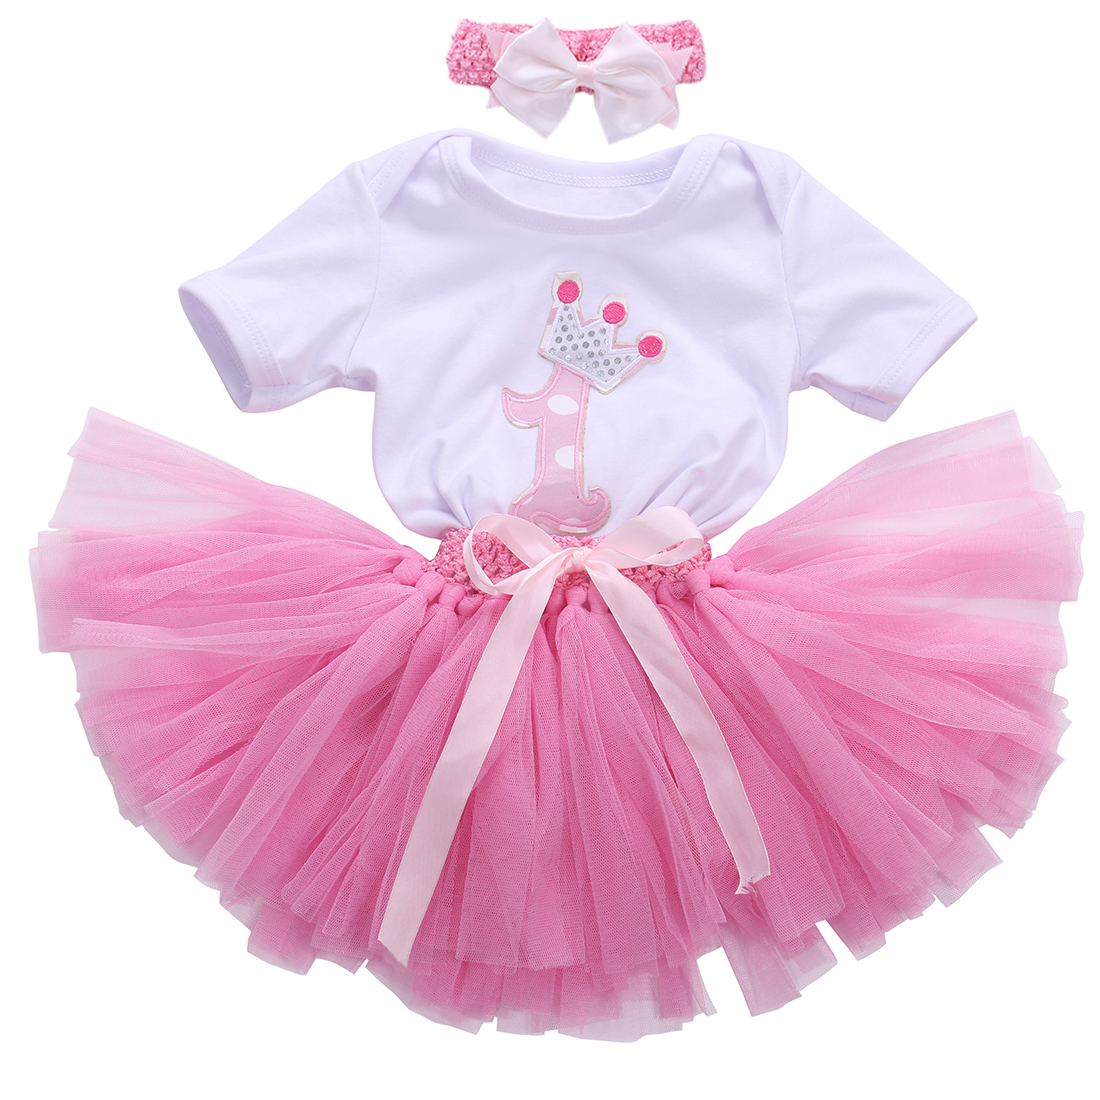 You searched for: baby girl tutu dress! Etsy is the home to thousands of handmade, vintage, and one-of-a-kind products and gifts related to your search. No matter what you're looking for or where you are in the world, our global marketplace of sellers can help you .